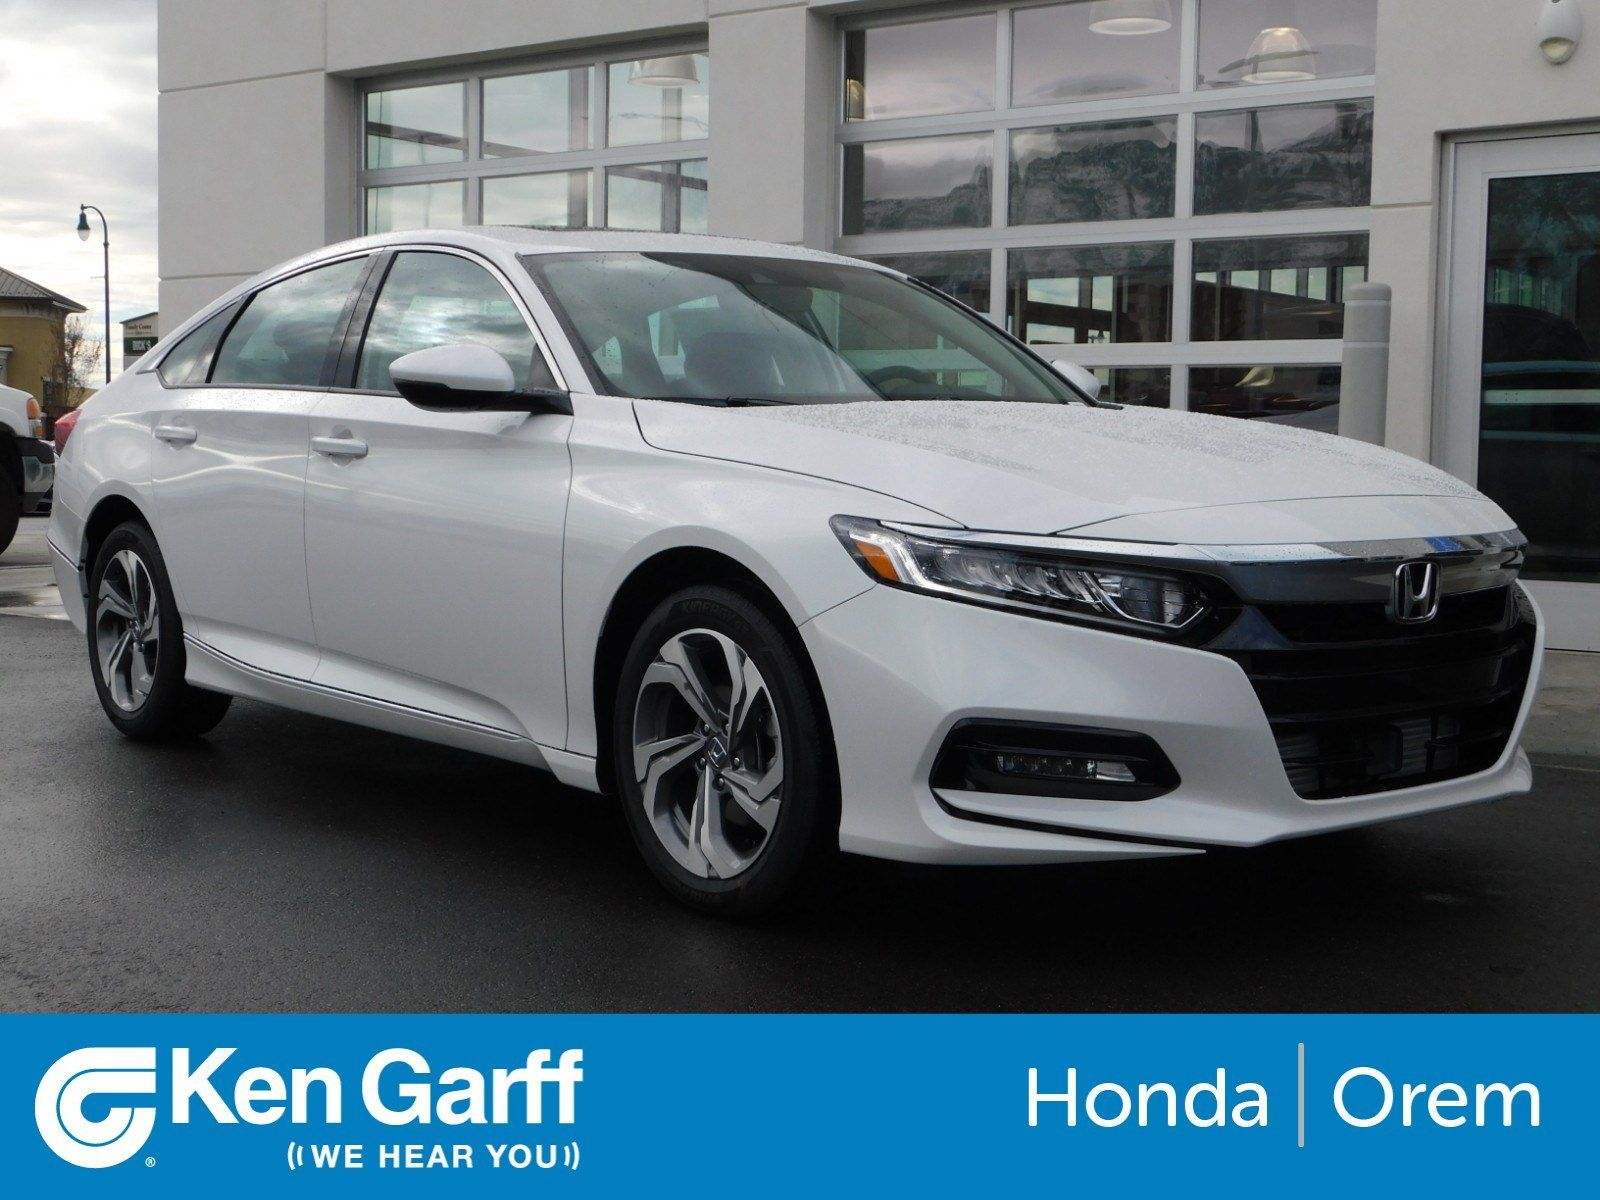 Honda Accord 2019 Sedan Honda accord, Sedan, Sedan sport